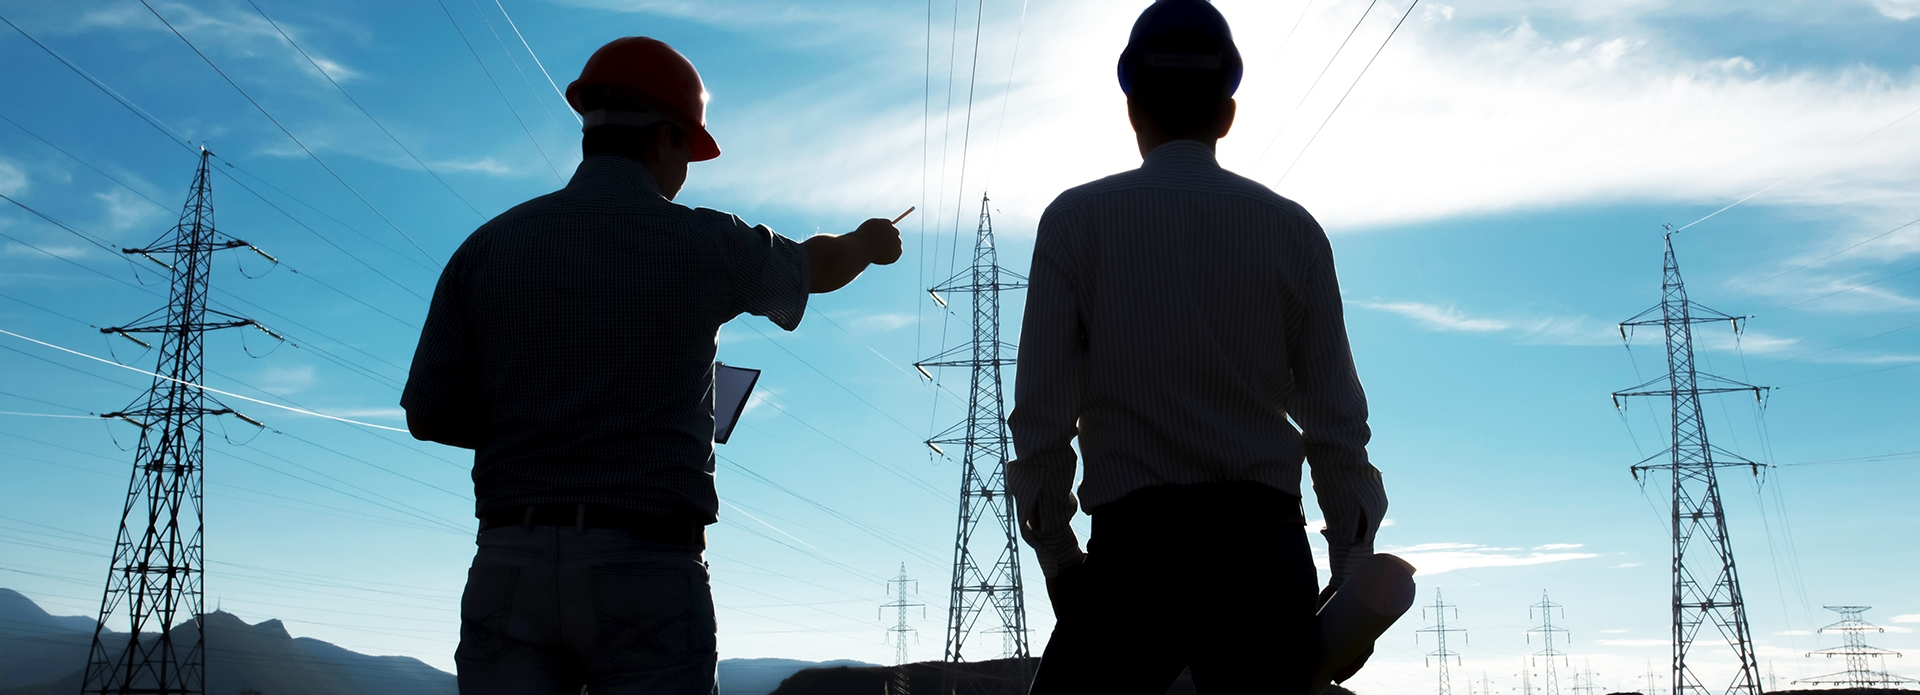 electrical workers surveying power lines